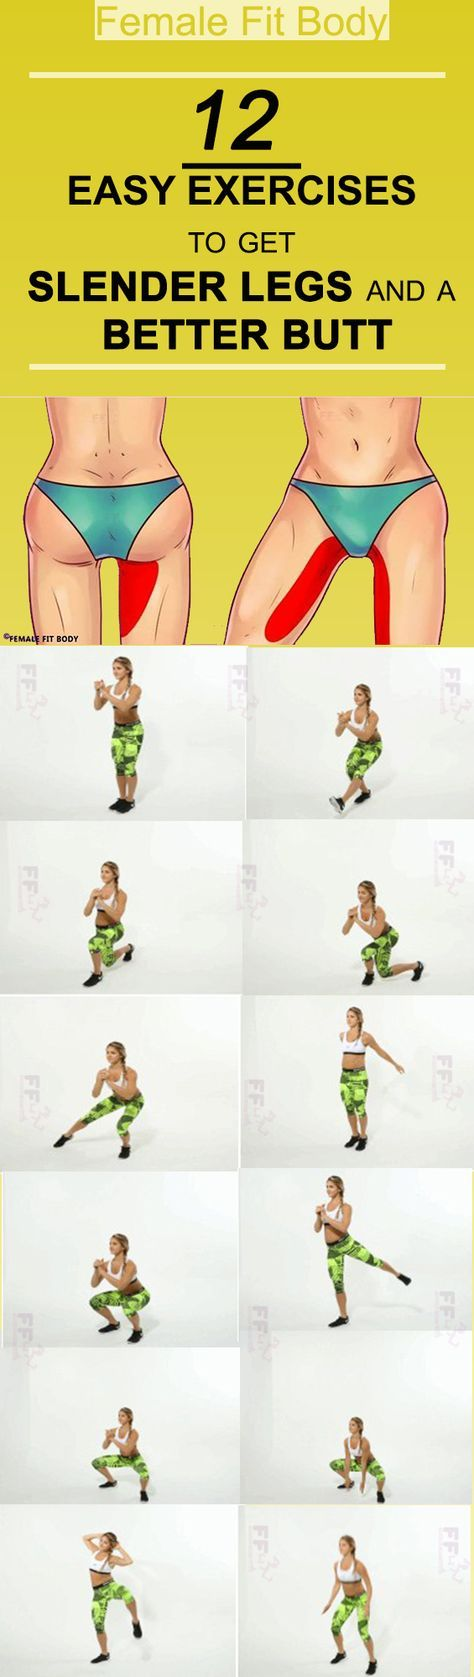 Just 15 minutes a day and you'll achieve astounding results!